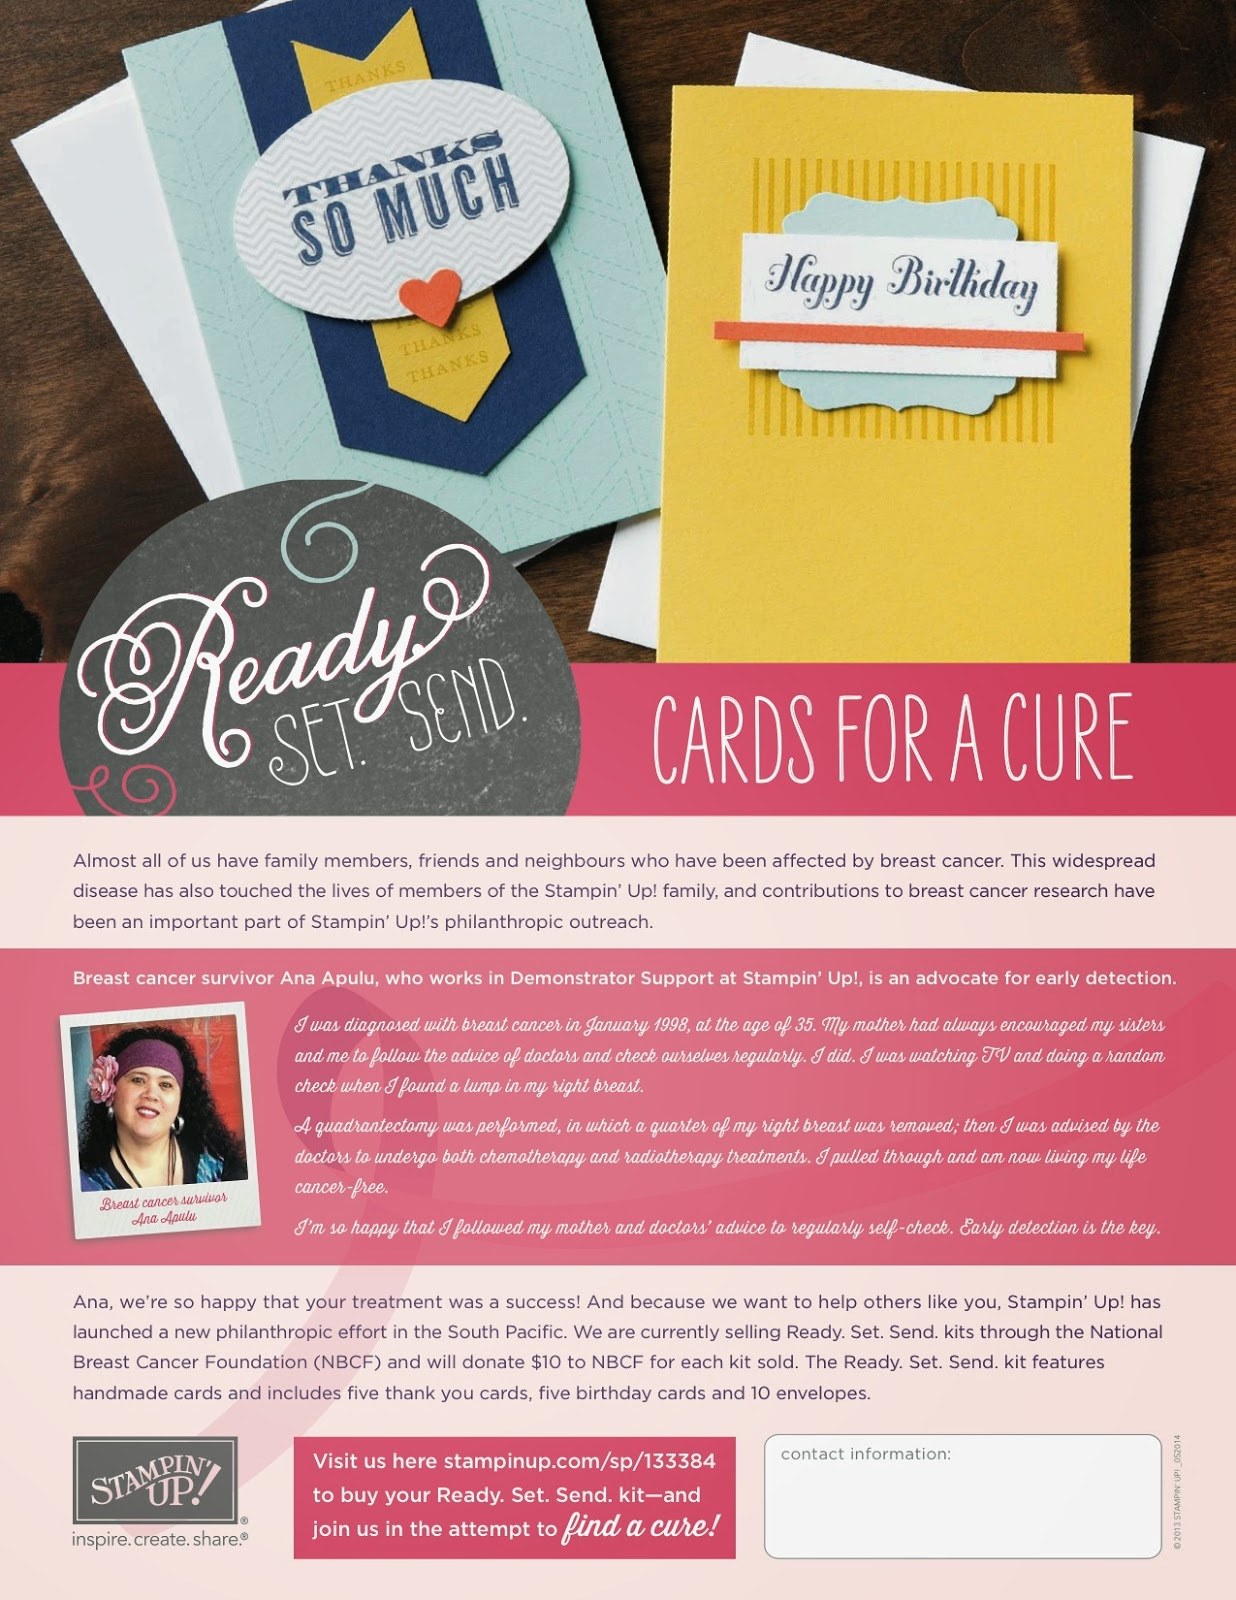 Ready. Set. Send. Cards for a Cure